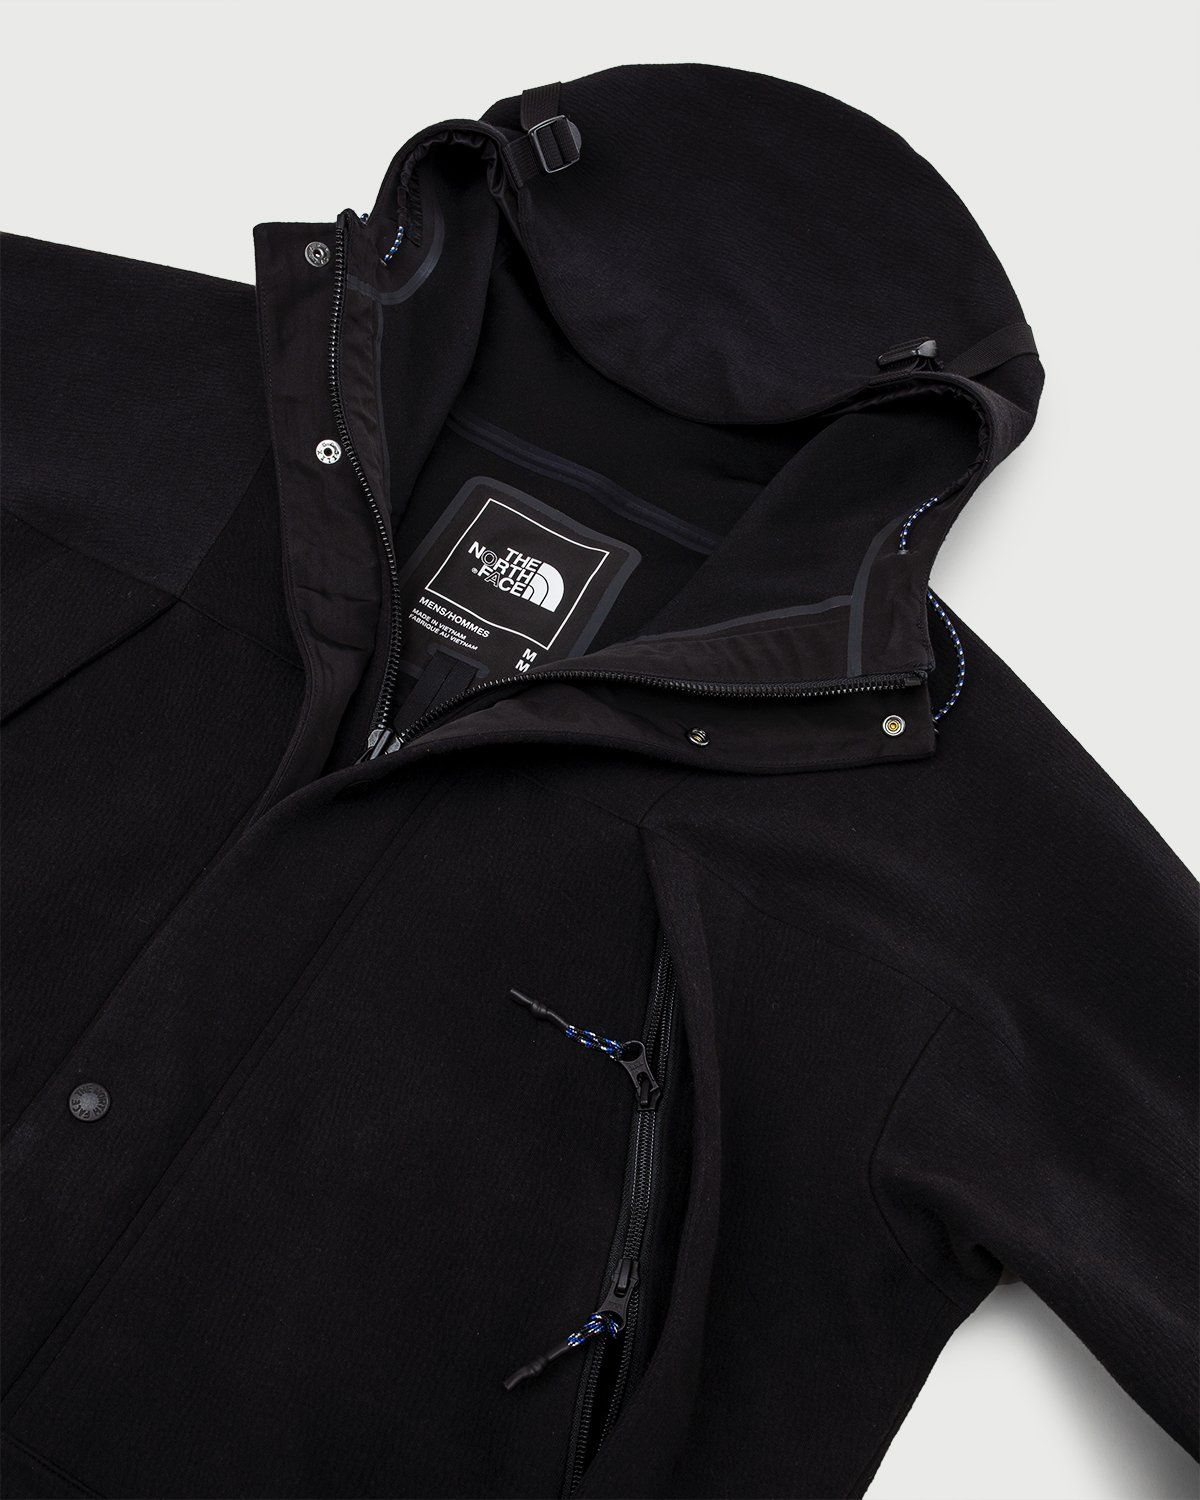 The North Face Black Series - Spacer Knit Mountain Light Jacket Black - Image 4